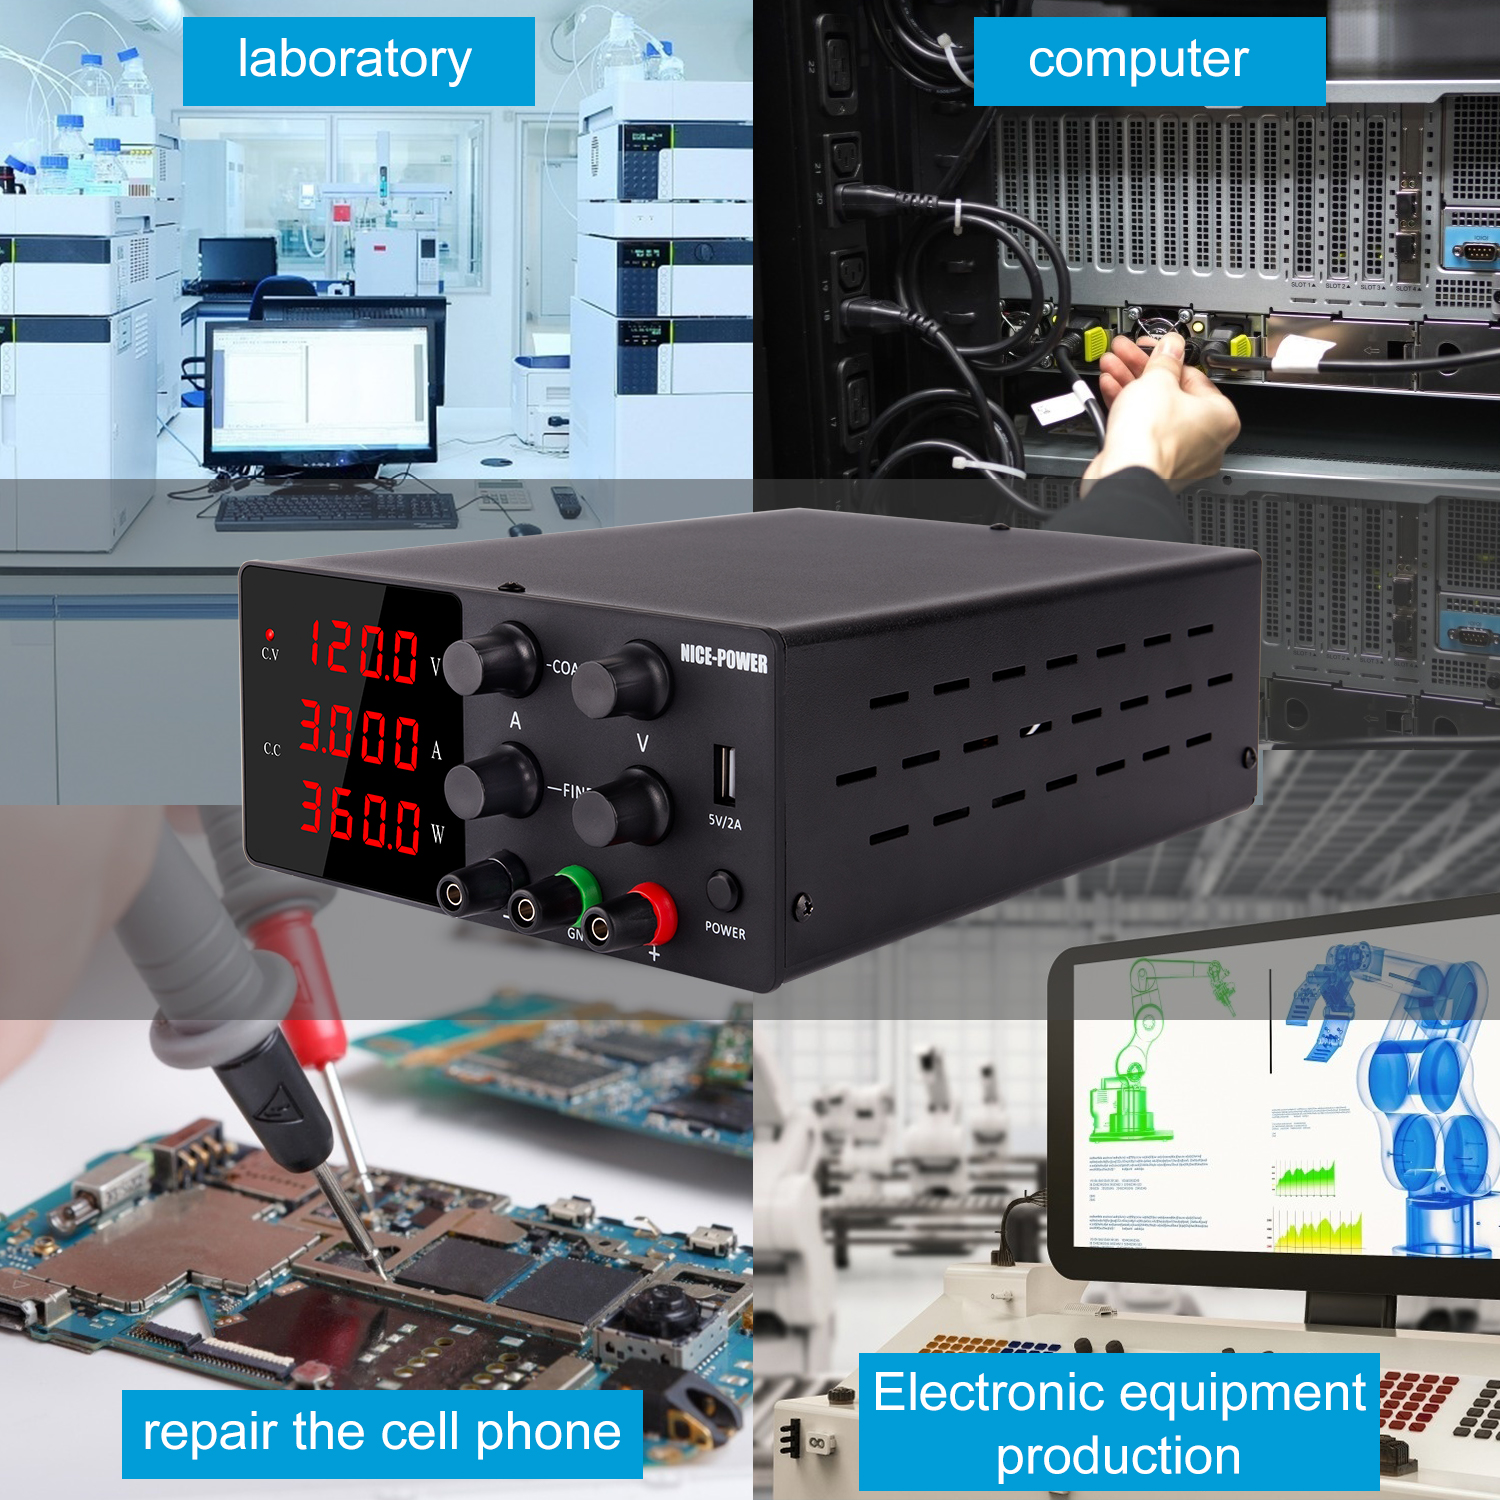 120V 3A Adjustable Power Supply Laboratory Digital Power Supply 30V 10A 60V 5A Bench Source Digital With USB Repair Products-3